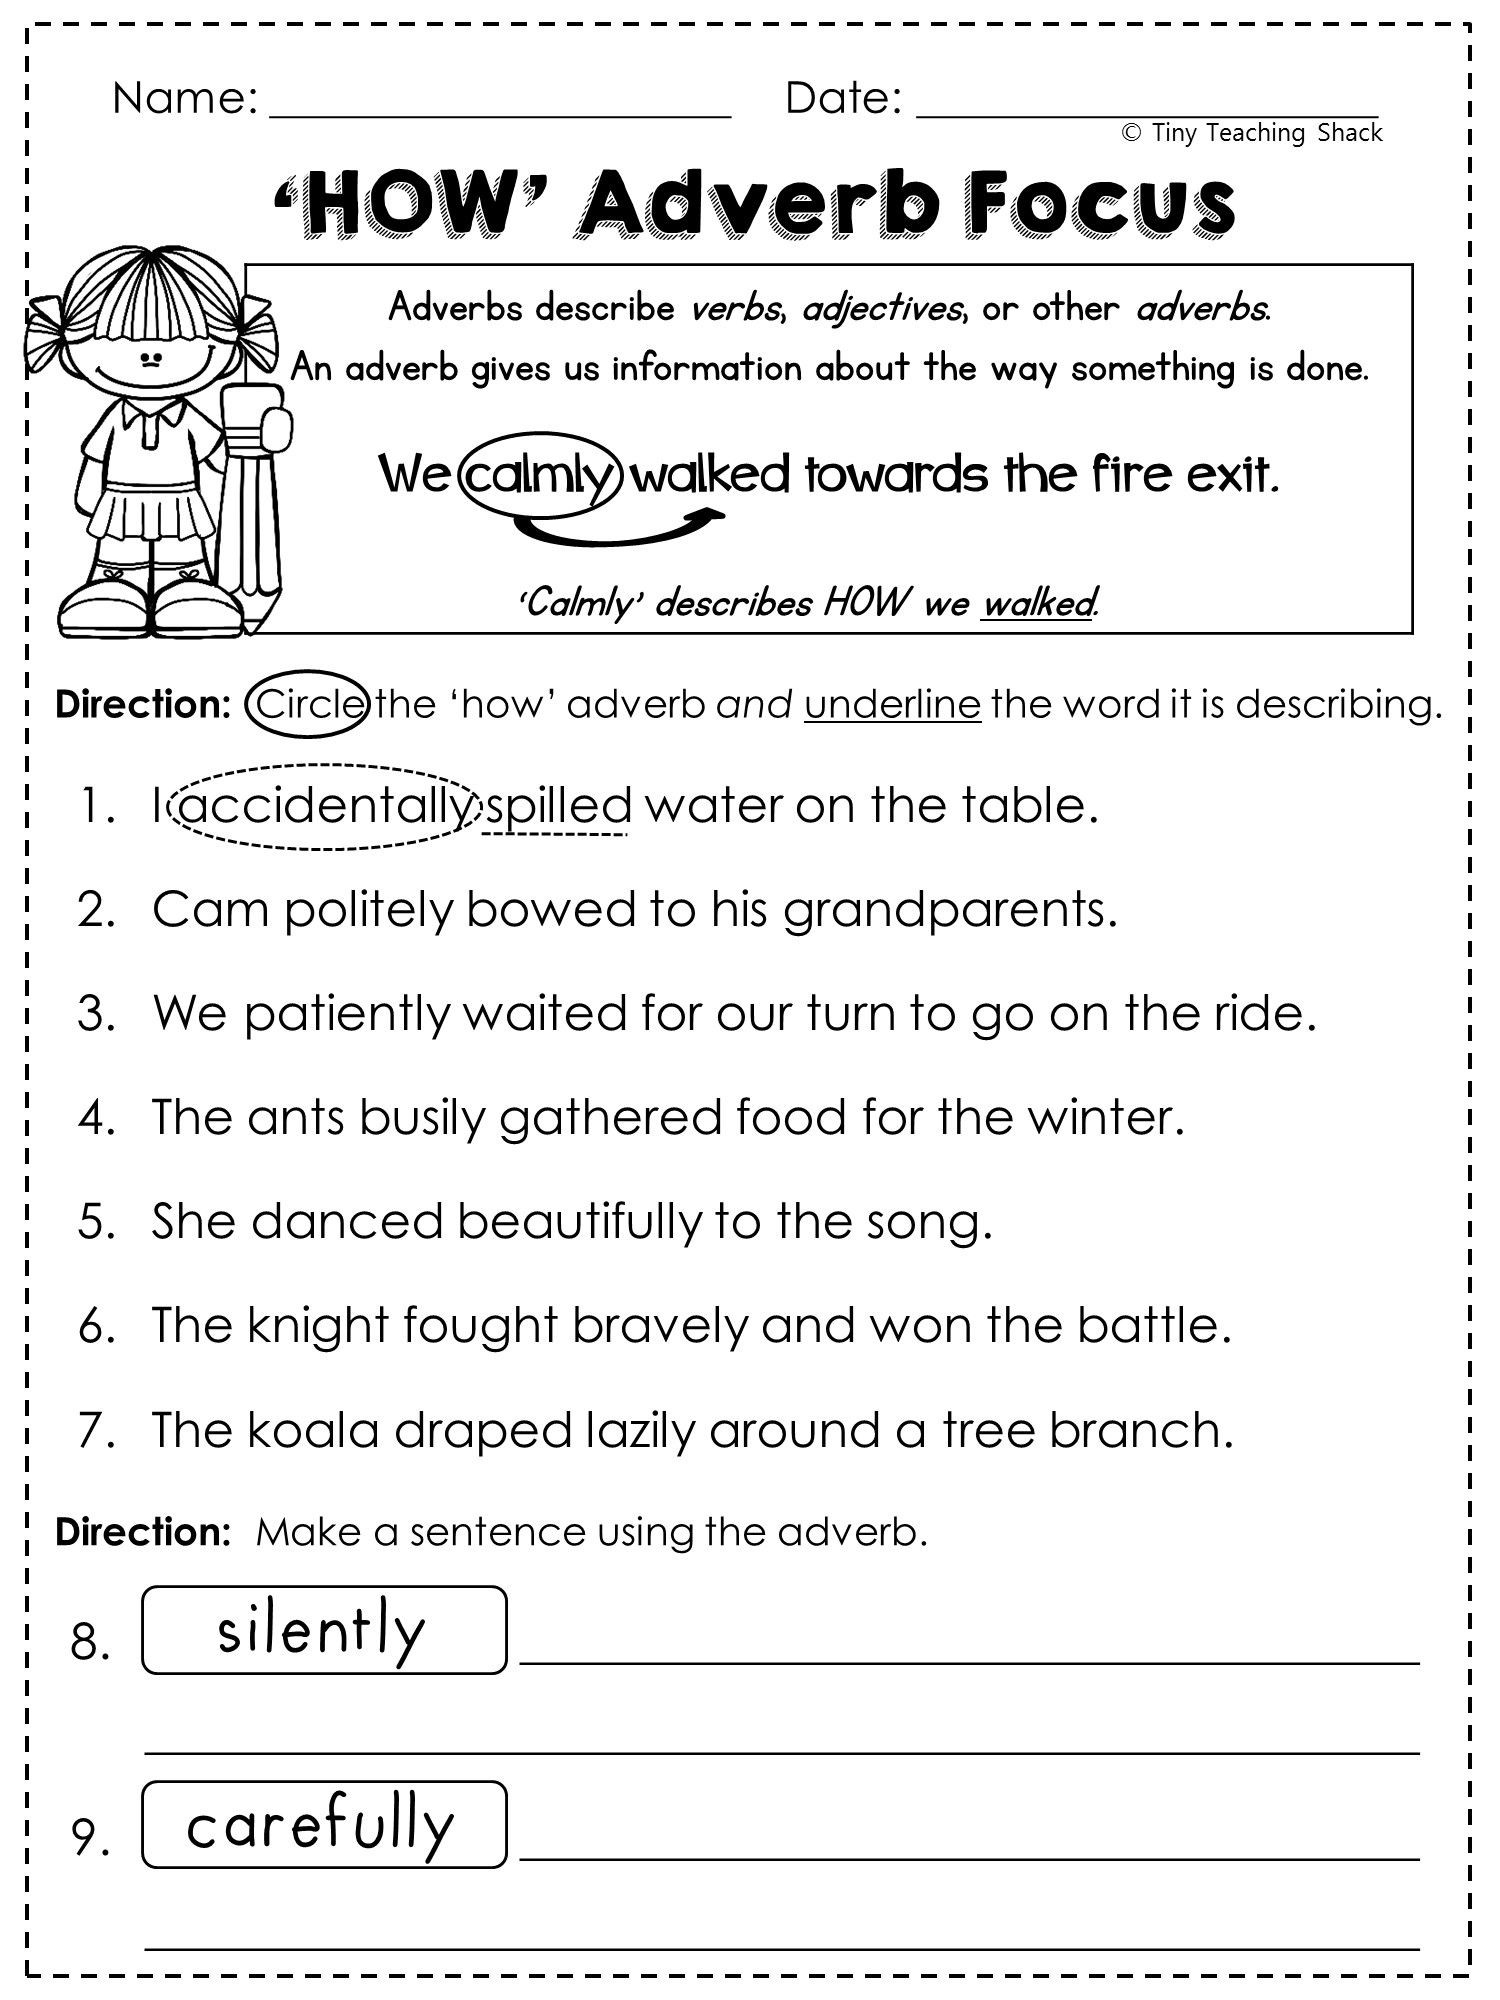 Grade 6 Printable Worksheets Beautiful Grade 6 English Worksheets - Year 2 Free Printable Worksheets